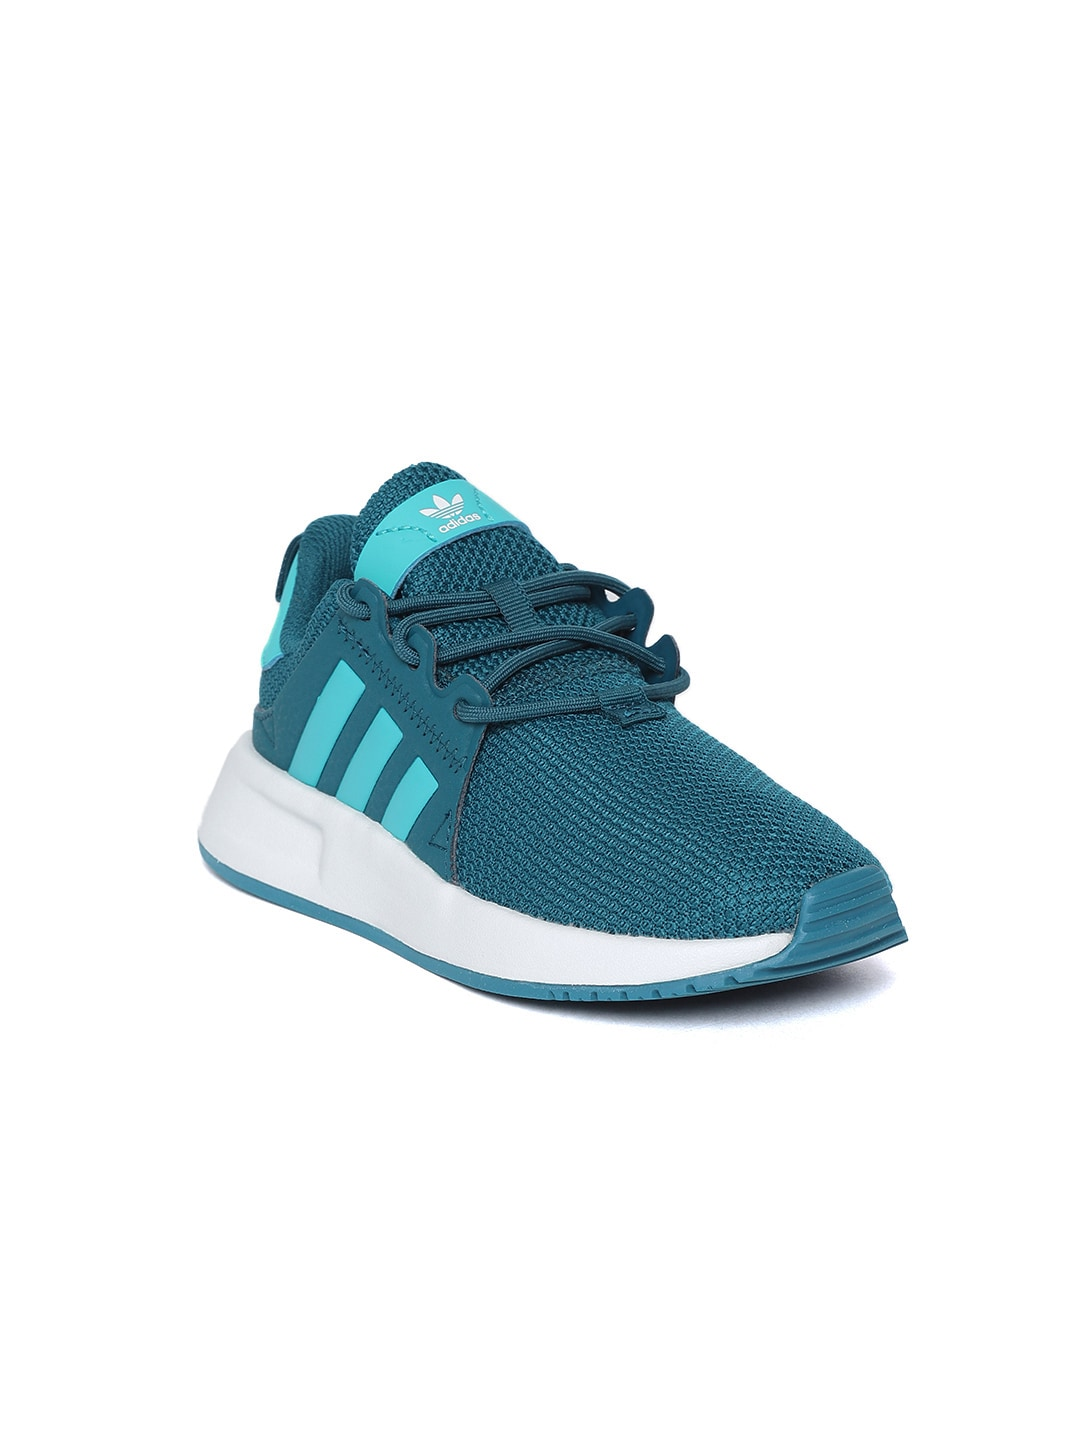 Adidas Shoes Online In Buy Kids India N80kPwOnX